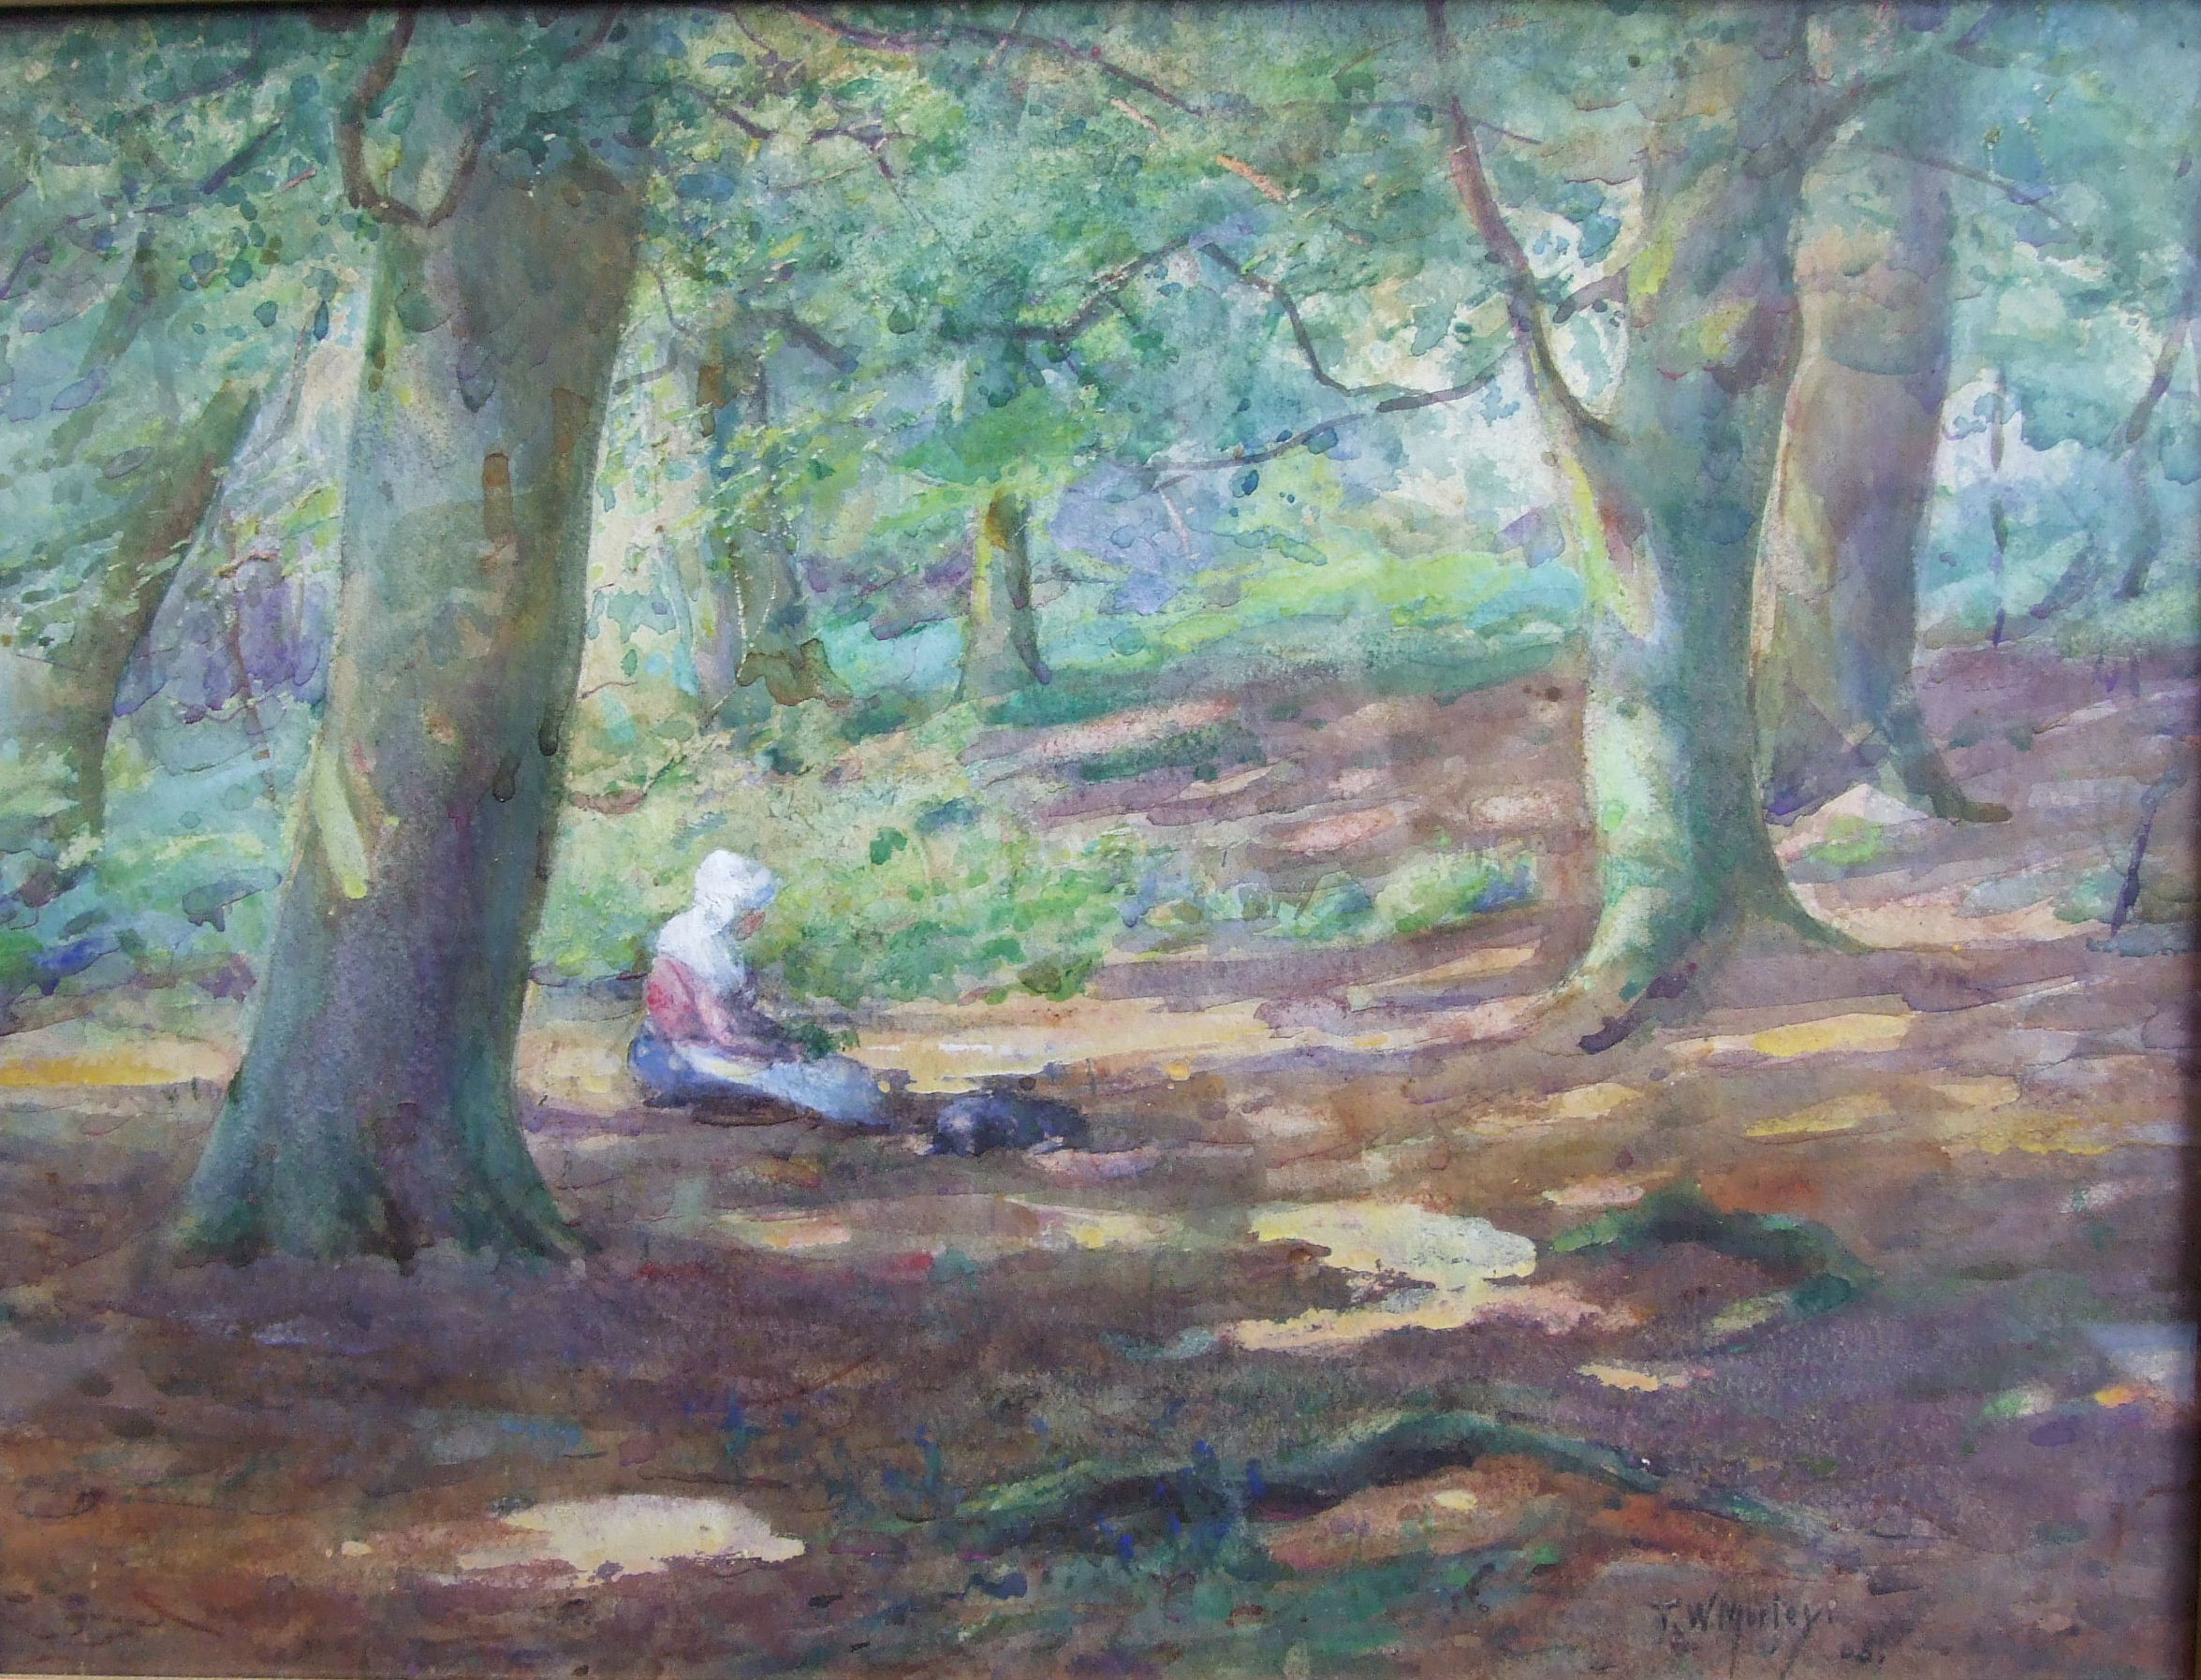 Lot 59 - Thomas William Morley (1859-1925) A WOMAN WEARING A WHITE BONNET, WITH A DOG, IN A WOODLAND GLADE